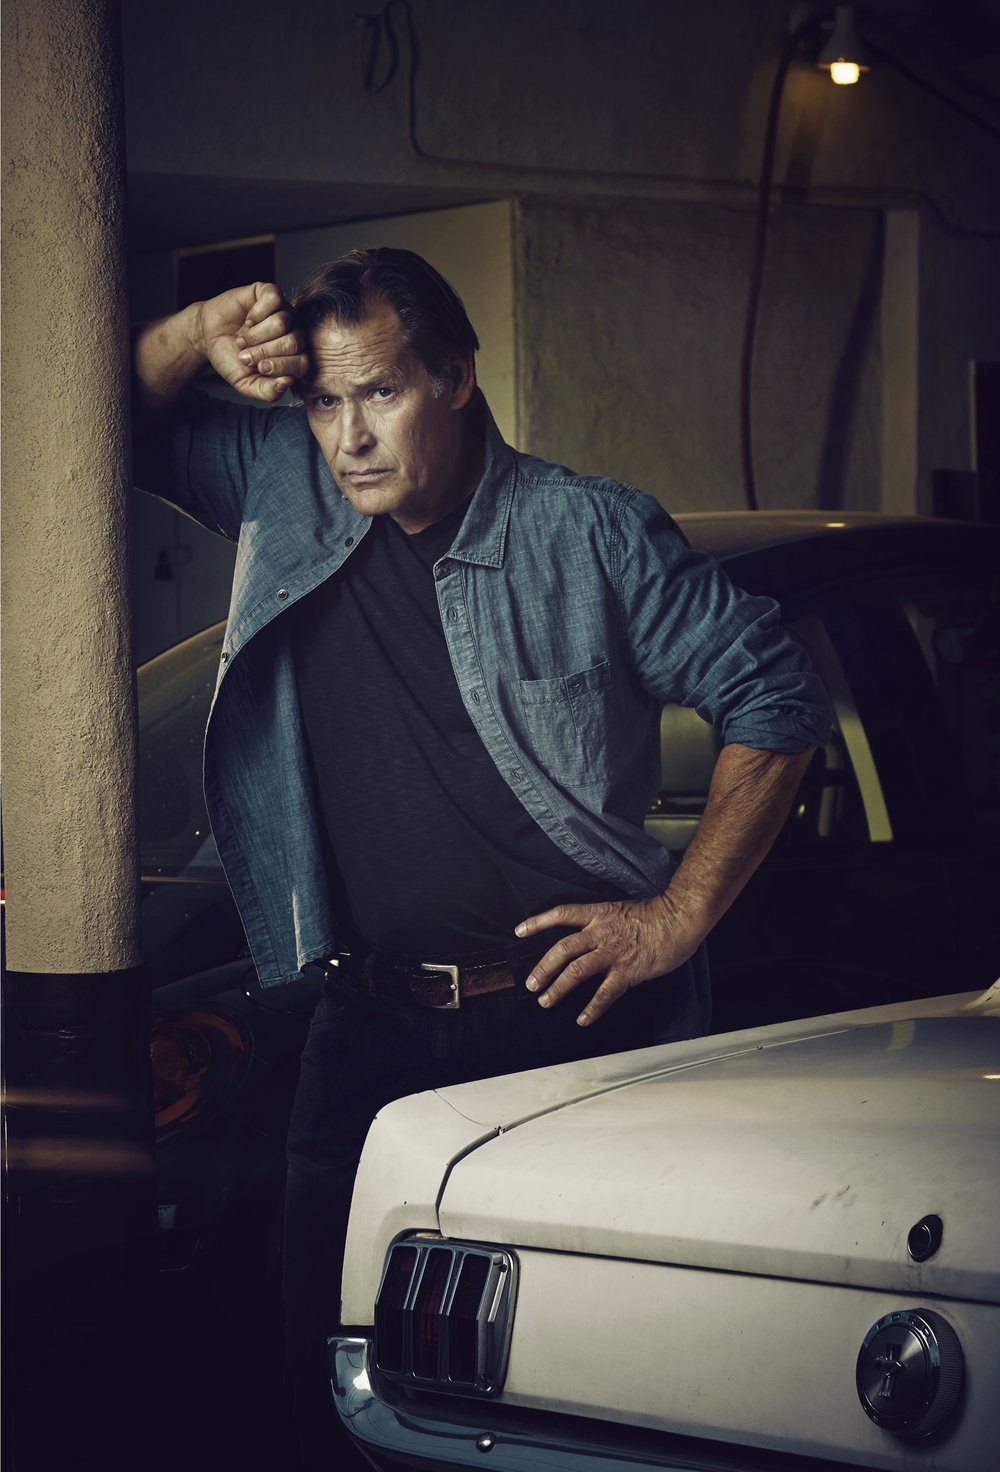 SS_james remar.jpg